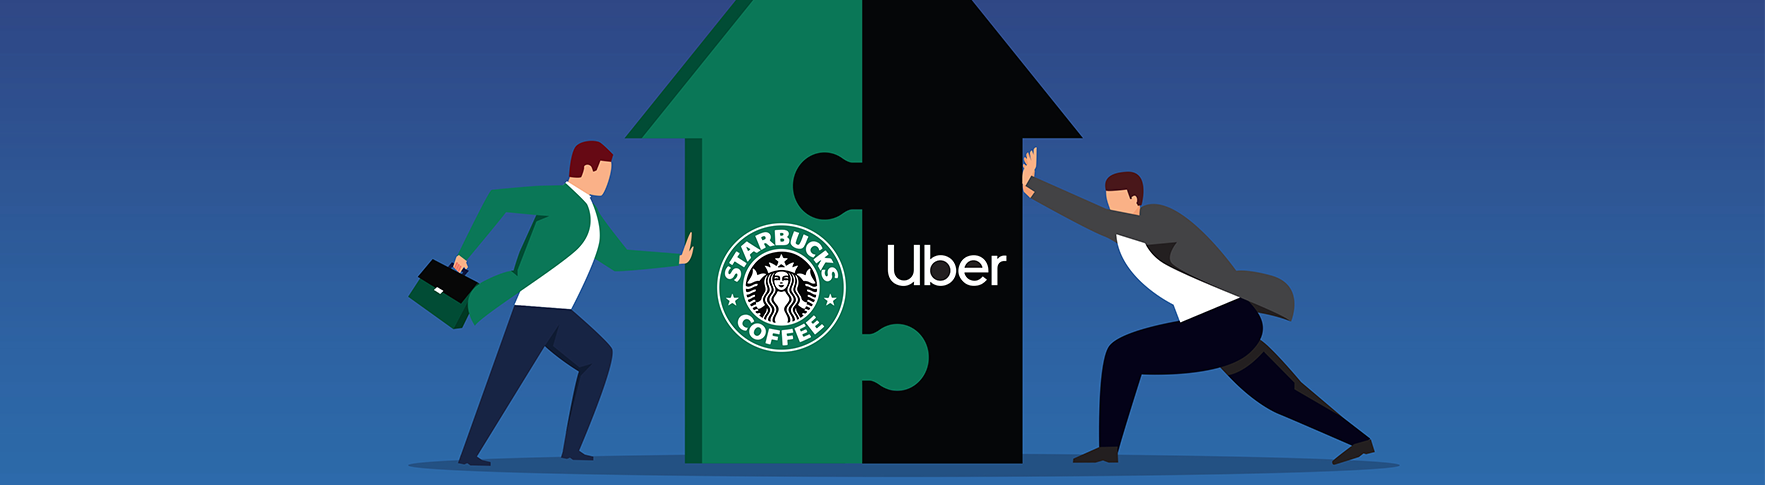 Illustration of two people pushing against a large green and black arrow, marked with a Starbucks and Uber logo